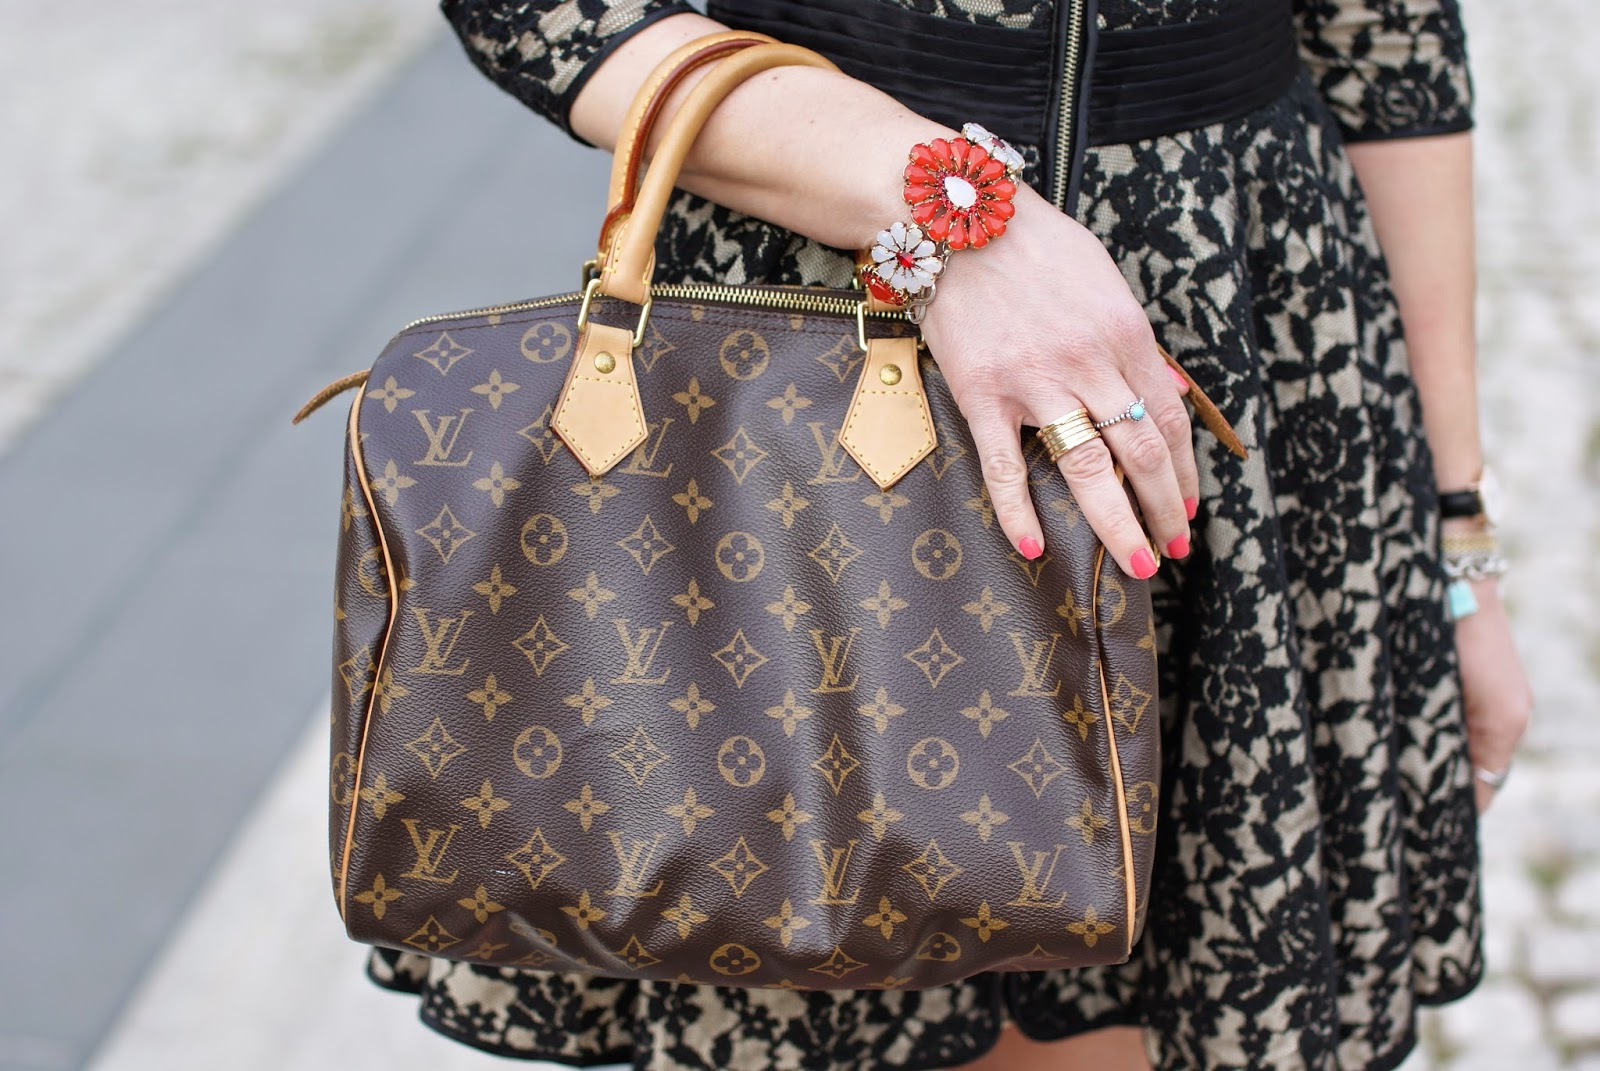 Louis Vuitton Speedy 30 bag, Sodini bracelet, BVLGARI BZero ring, Fashion and Cookies, fashion blogger